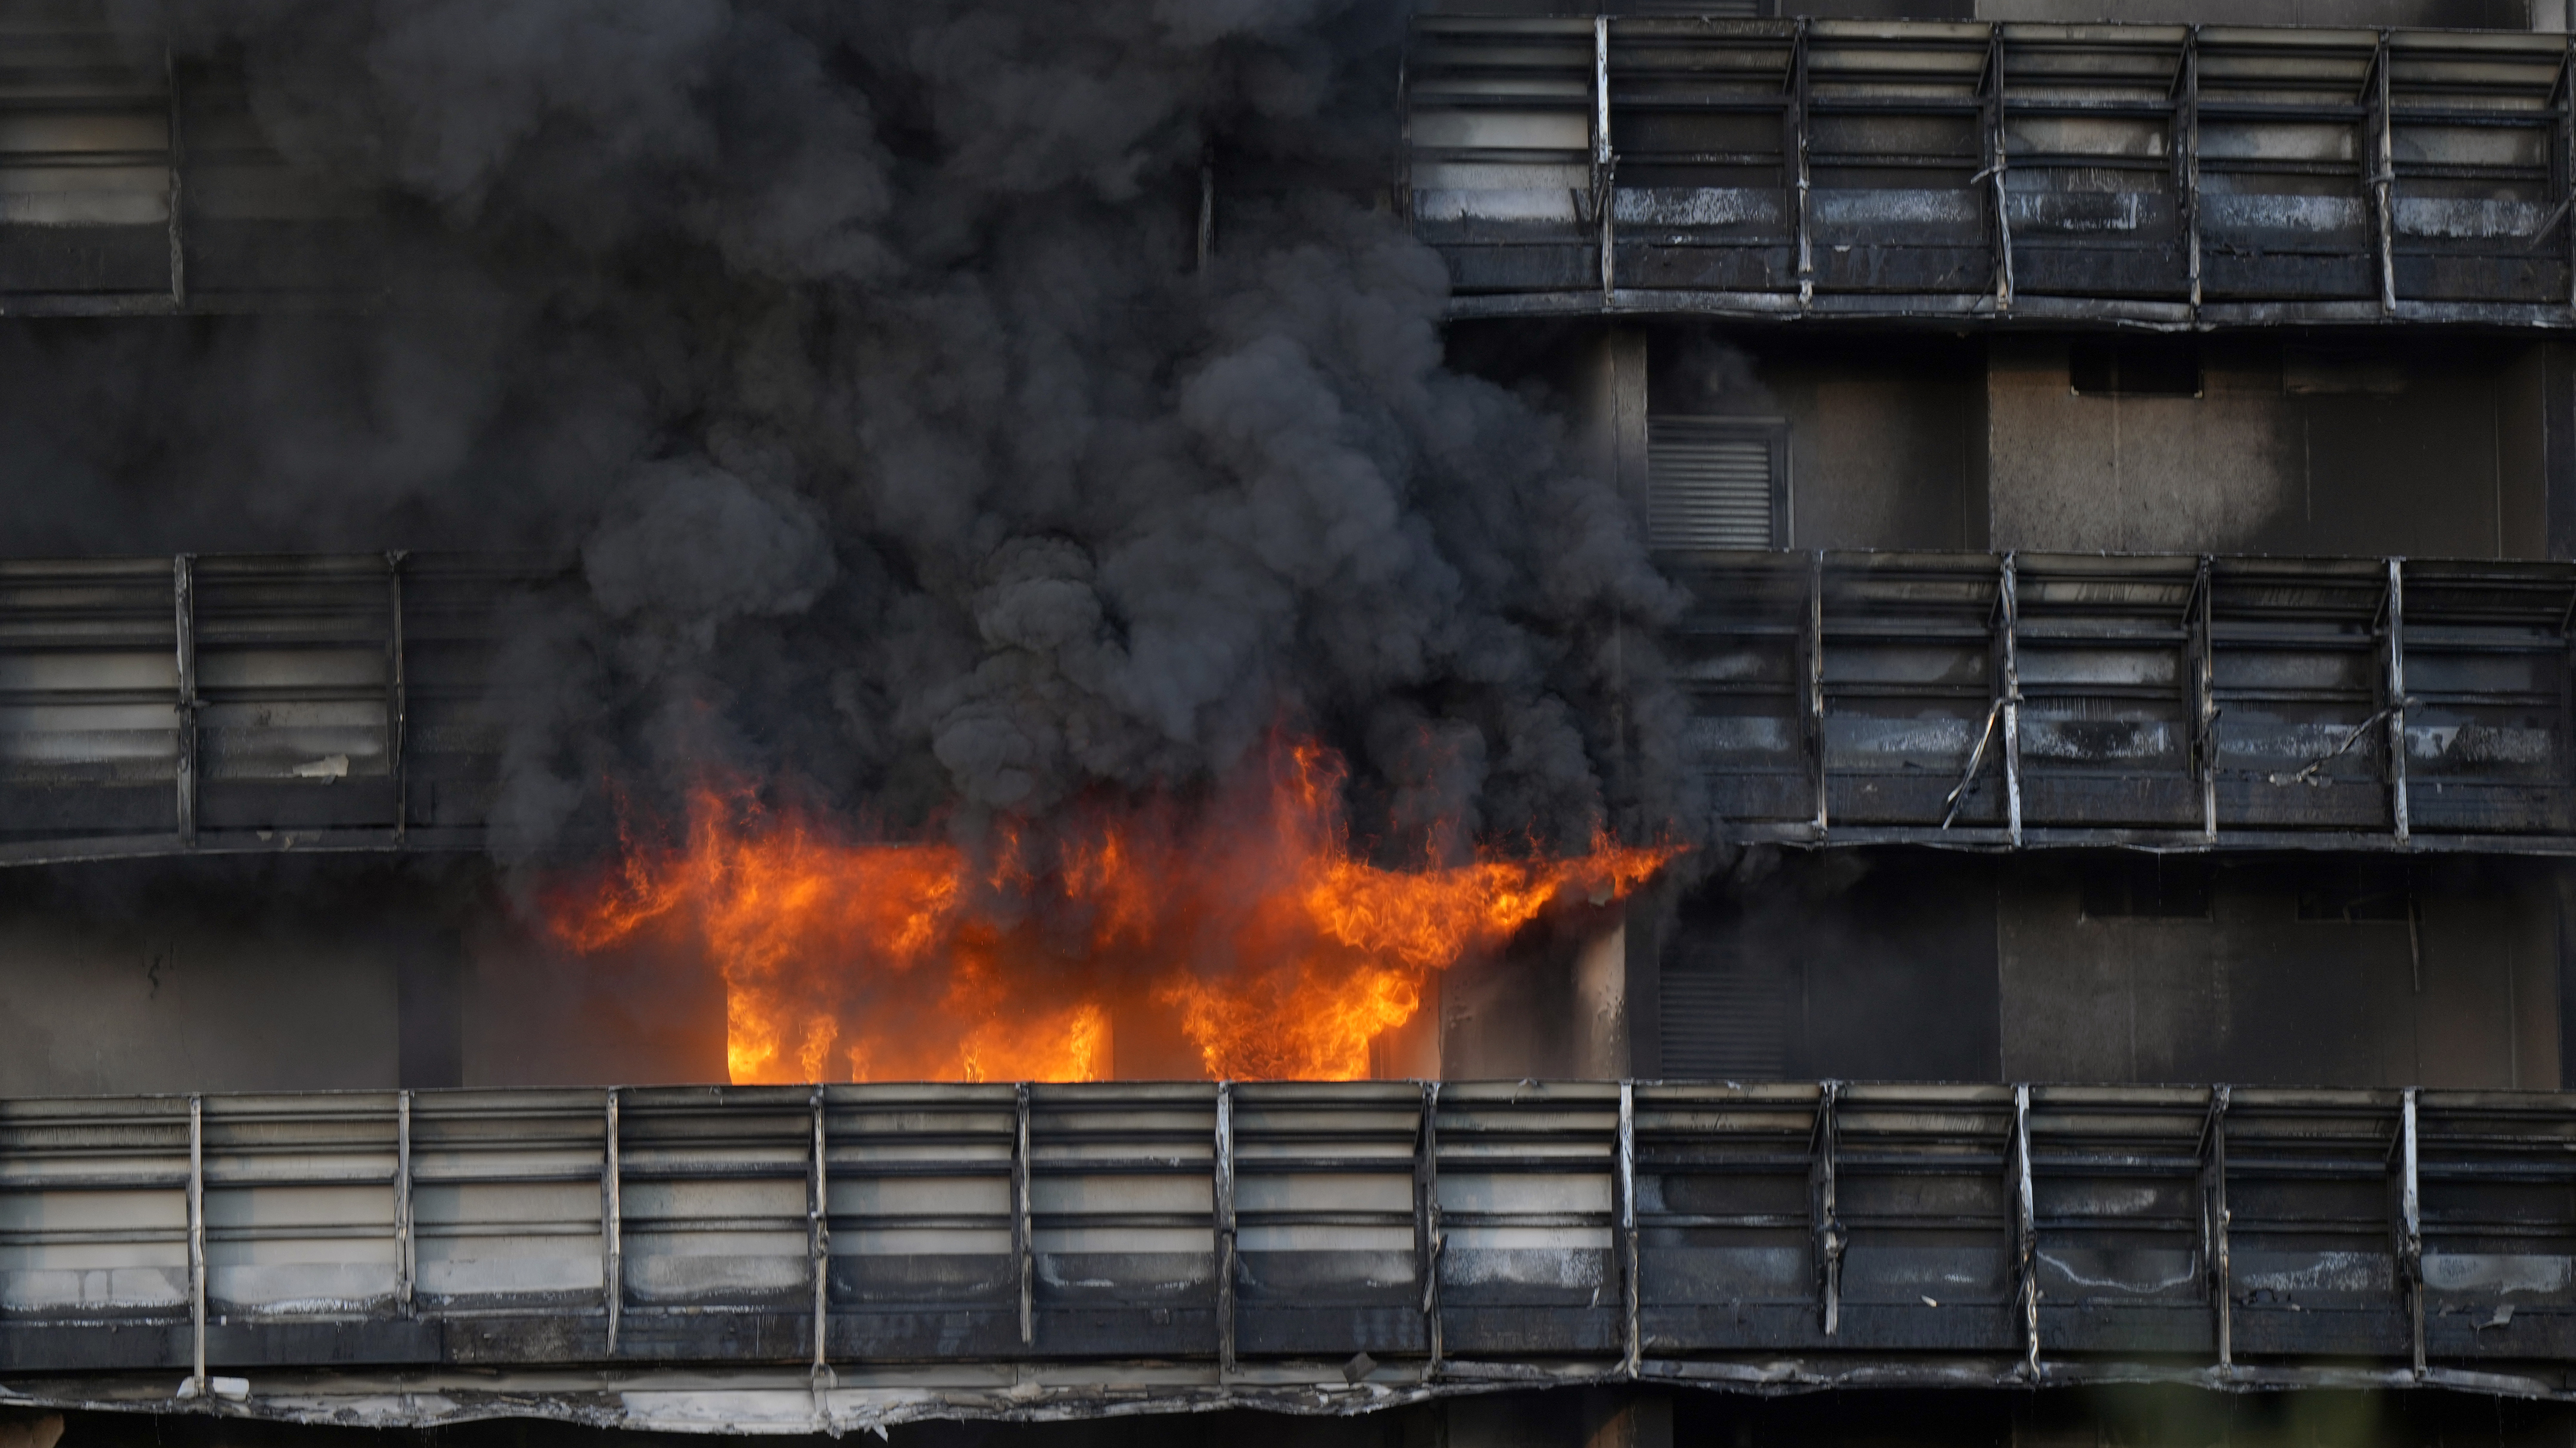 Firefighters were battling a blaze on Sunday that spread rapidly through a recently restructured 60-meter-high, 16-story residential building in Milan.